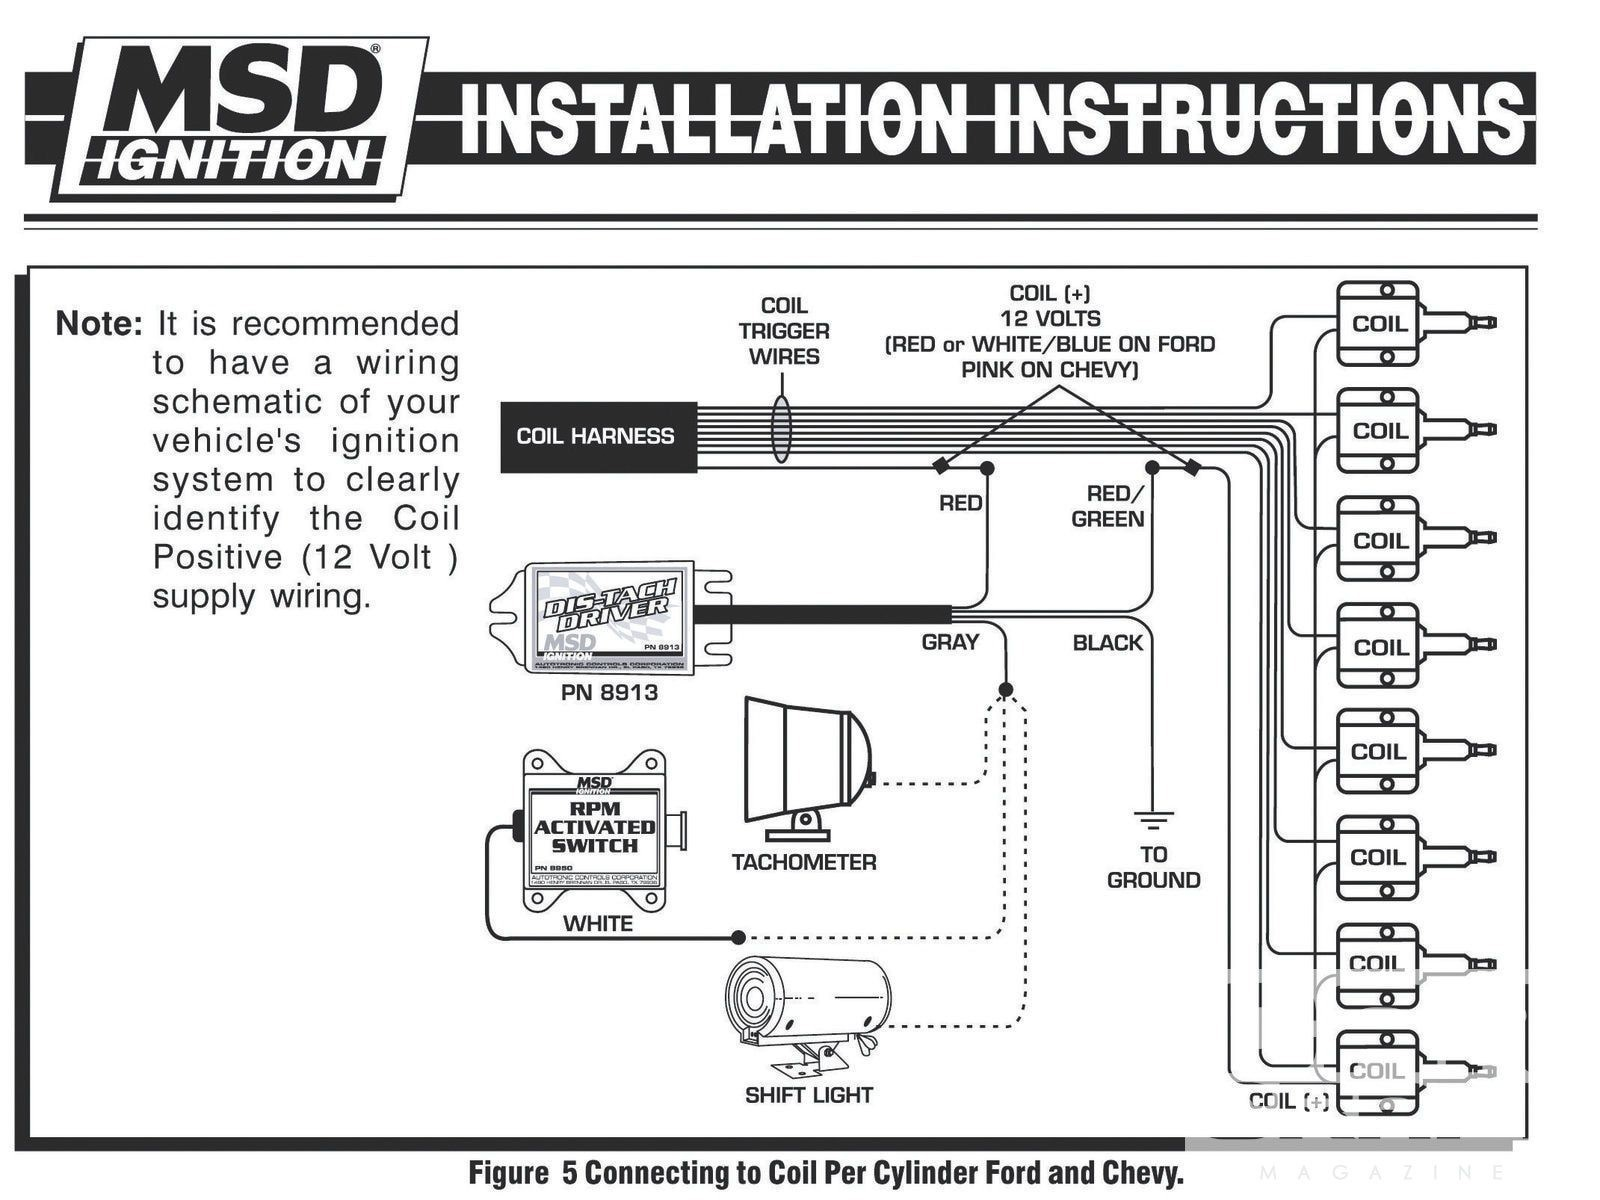 Auto Meter Monster Tach Wiring Diagram Product Wiring Diagrams \u2022 Auto  Meter Monster Tach Wiring Diagram